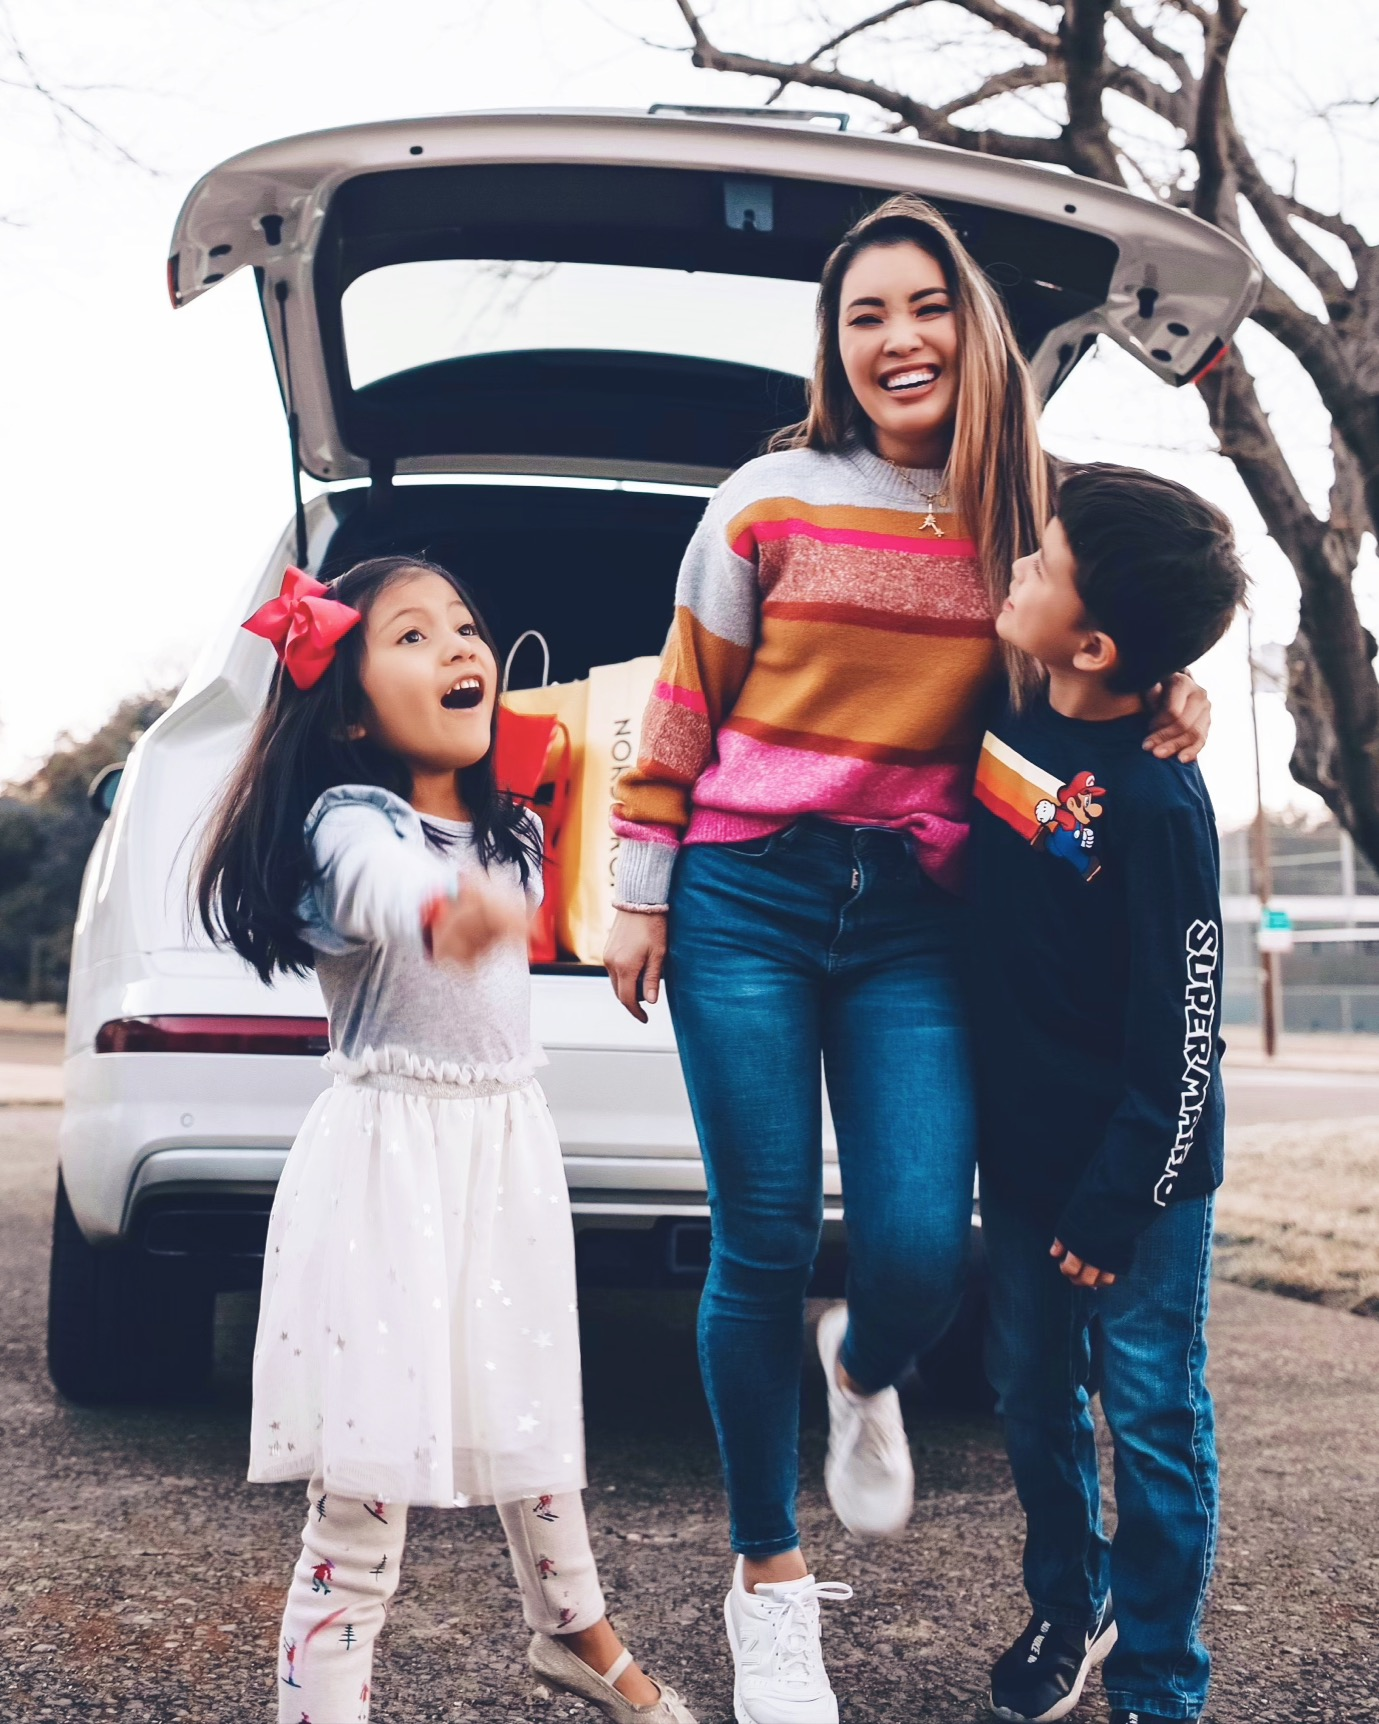 cute & little | dallas petite fashion blog | 2020 after christmas sales roundup | After Christmas Sales by popular Dallas life and style blog, Cute and Little: image of a mom and her two kids standing together behind their car and wearing aLOFT Striped Sweater, Abercrombie Jeans med wash, New Balance 311 V2 Sneakers, Sequin 'Heavenly Bodies' Horoscope Necklace,Mario shirt, Tucker & Tate jean, Nike 'Flex' sneakers, and Target dress.